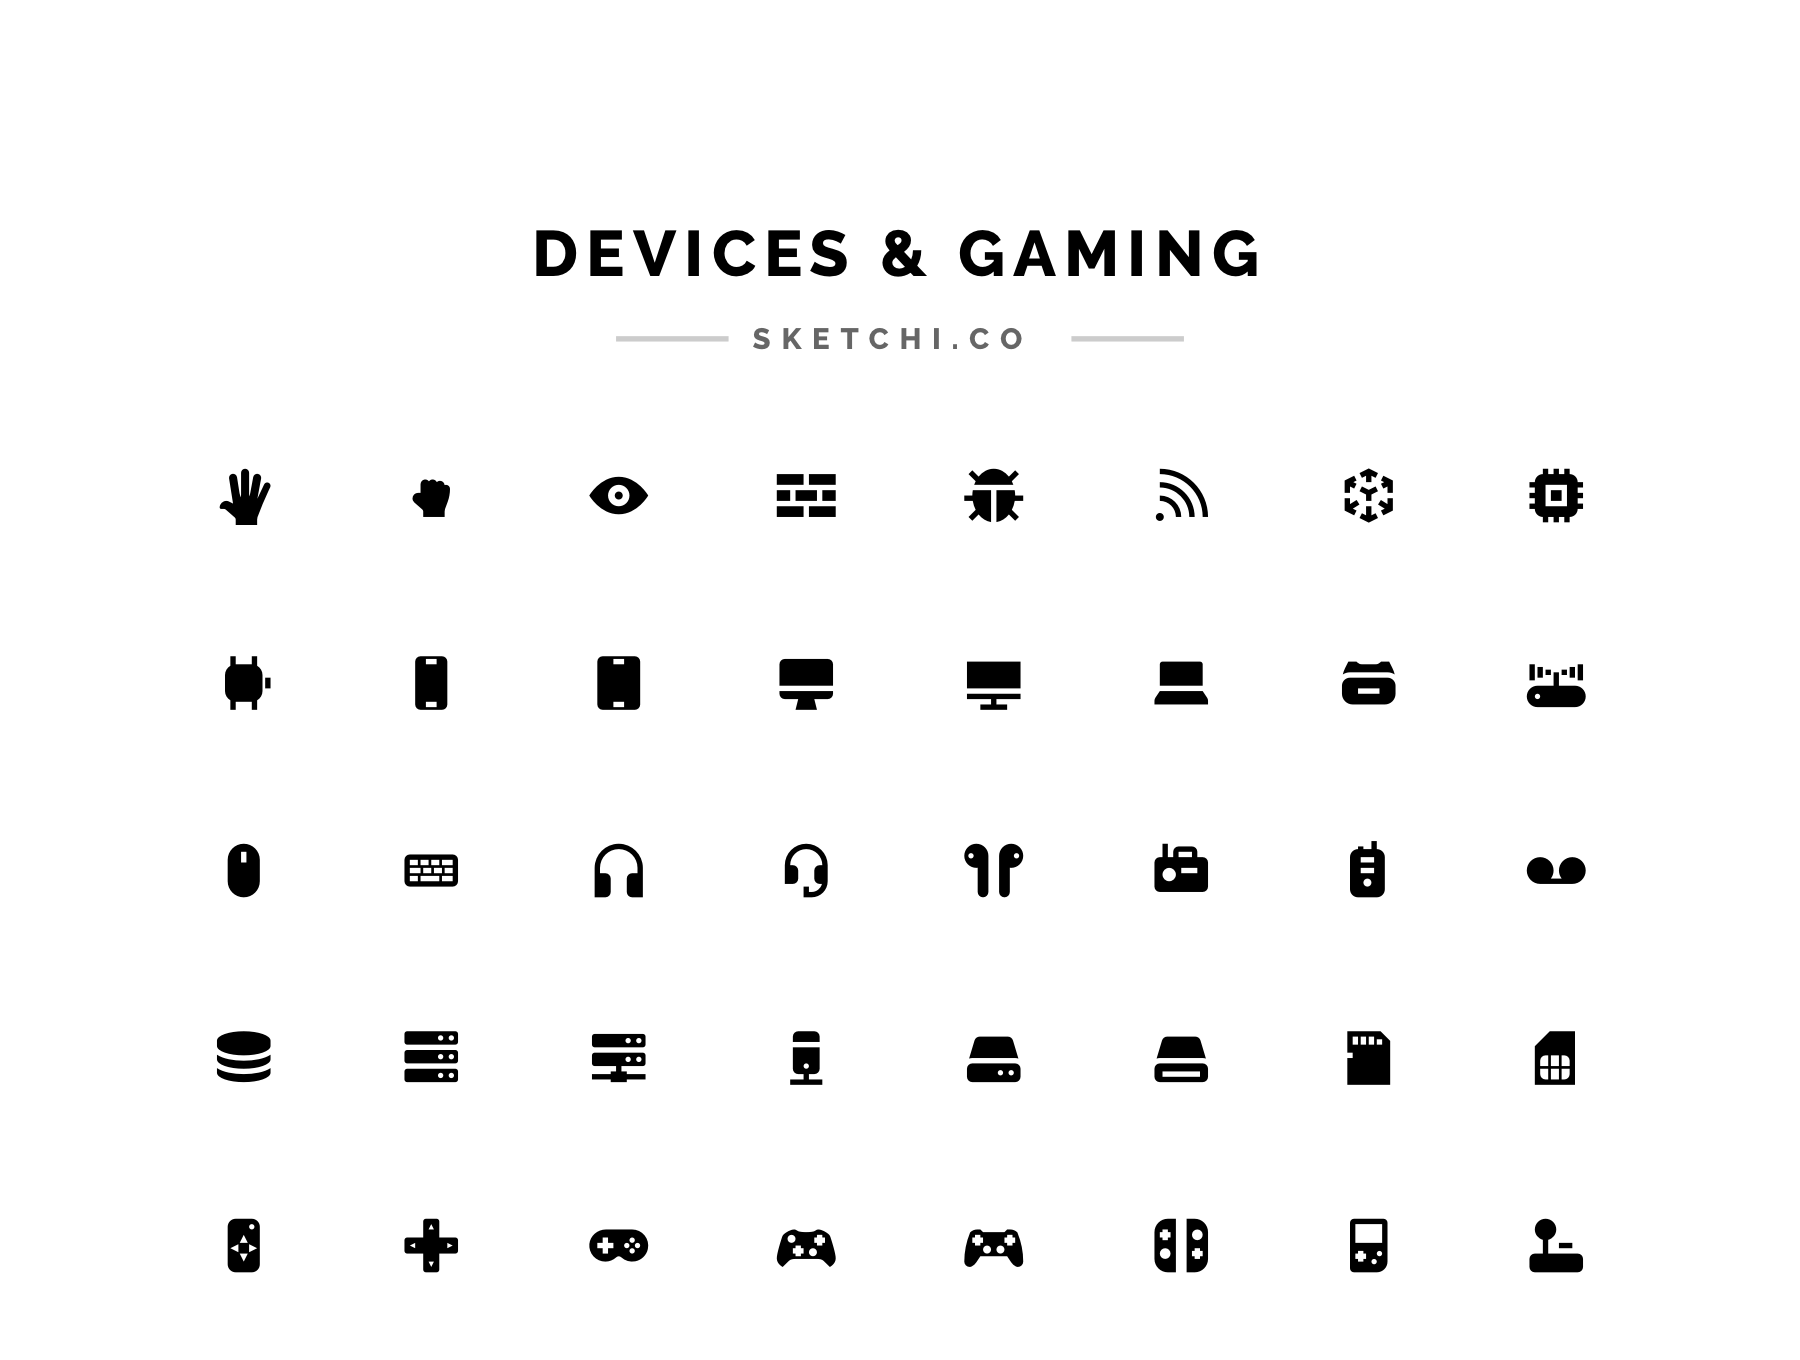 Devices and gaming icons